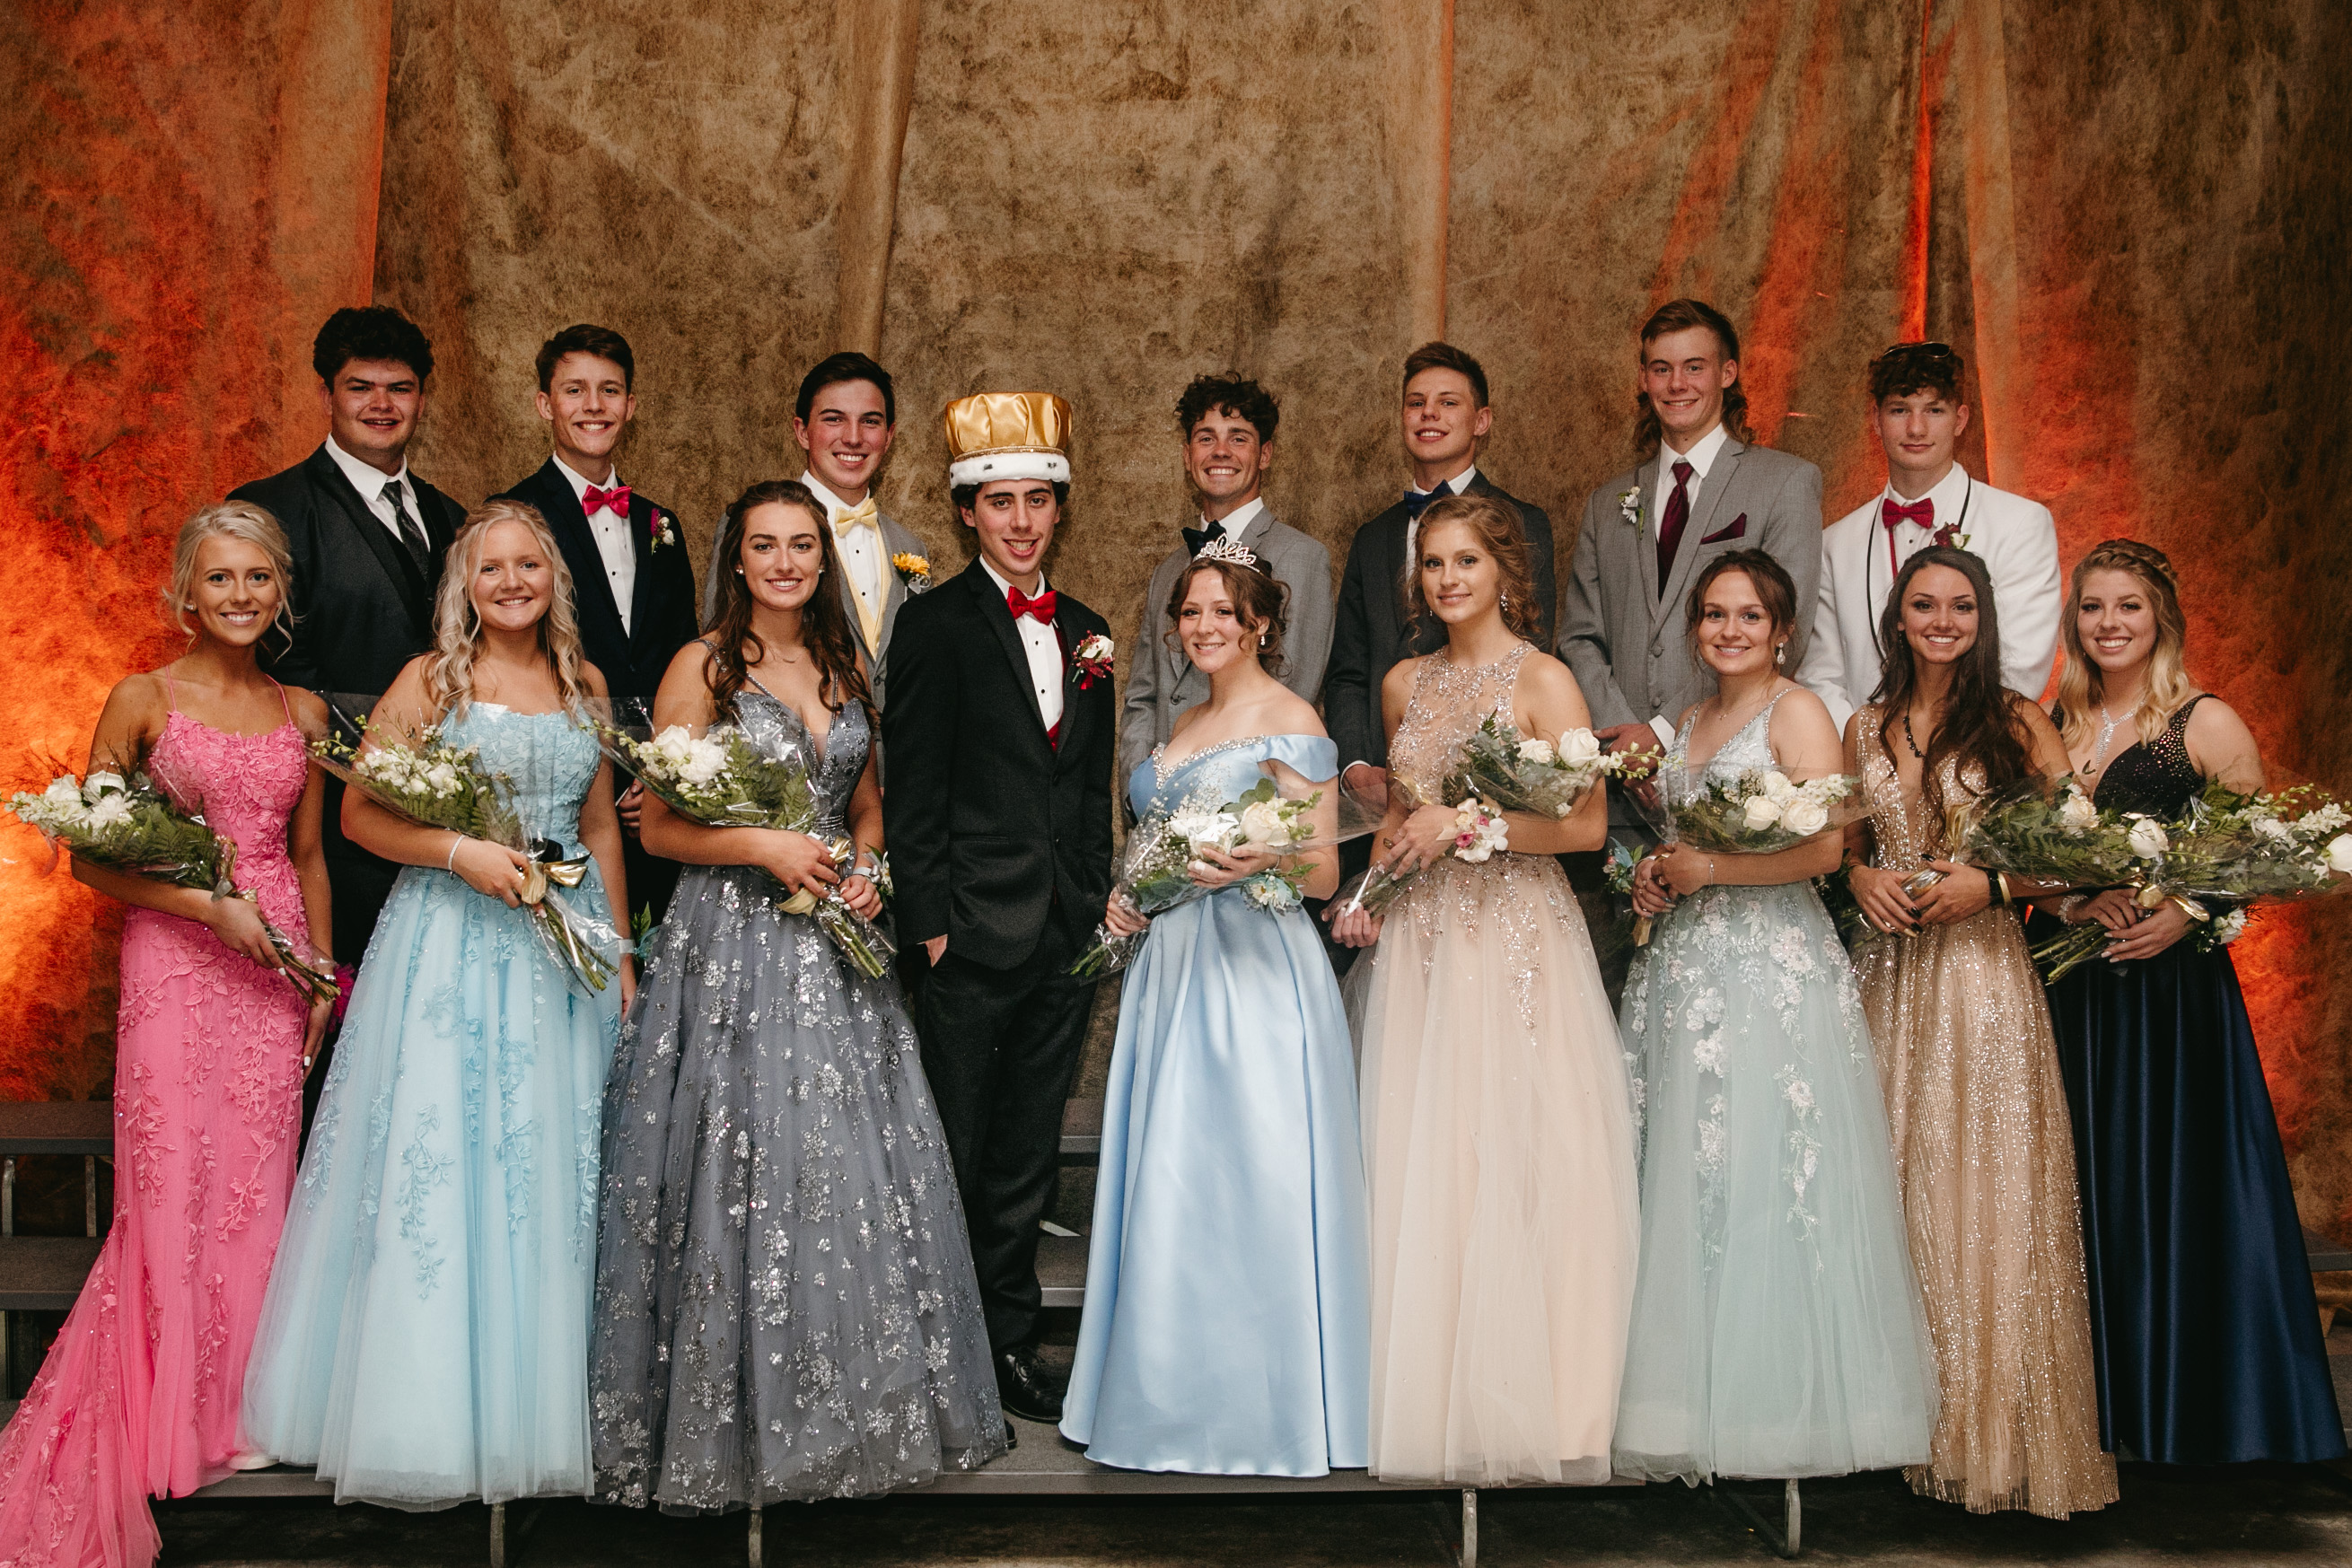 The senior court included, back row from left, David Finkel, Keith Curtin, Garrett Schincker, Zach Bestor, Connor Schyvinck, Hunter Dempsey and Liam Greenwood; front row from left, Jenna Thieding, Claire Adelman, Delaney Horkan, Olivia Klingbeil, Isabel Severson, Jaylyn Jynek and Daylia Barreau. Dan Ely was king, and Danielle Peyer was queen.